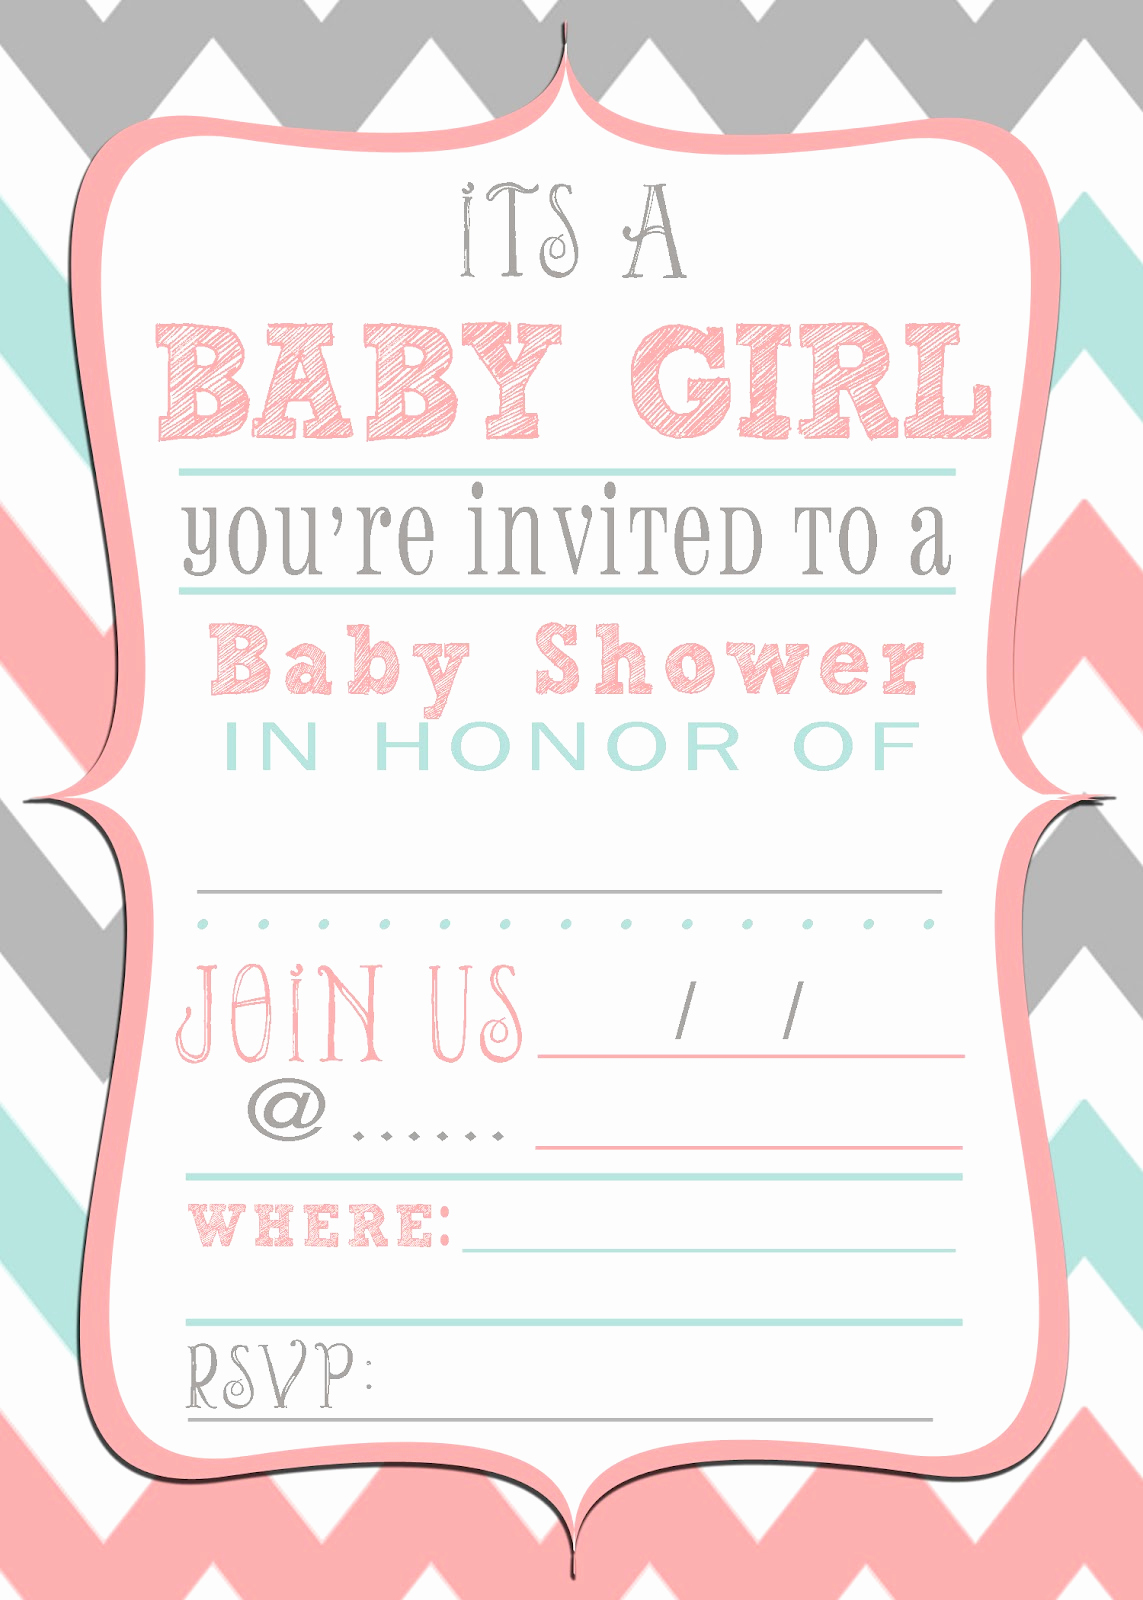 Blank Baby Shower Invitation Template Unique Mrs This and that Baby Shower Banner Free Downloads